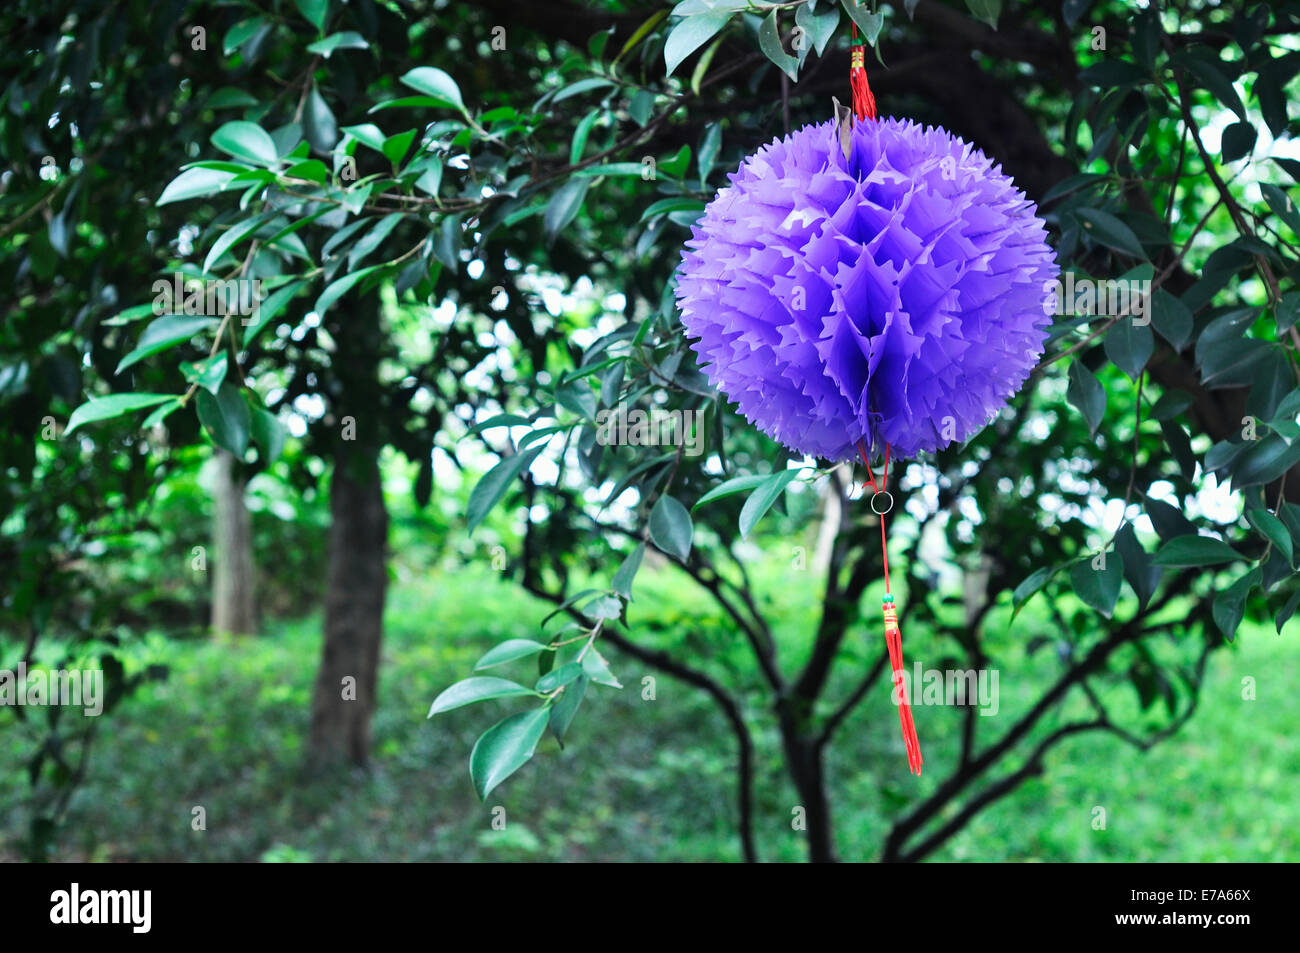 Origami paper flowers ball hanging on tree in childrens park in origami paper flowers ball hanging on tree in childrens park in china mightylinksfo